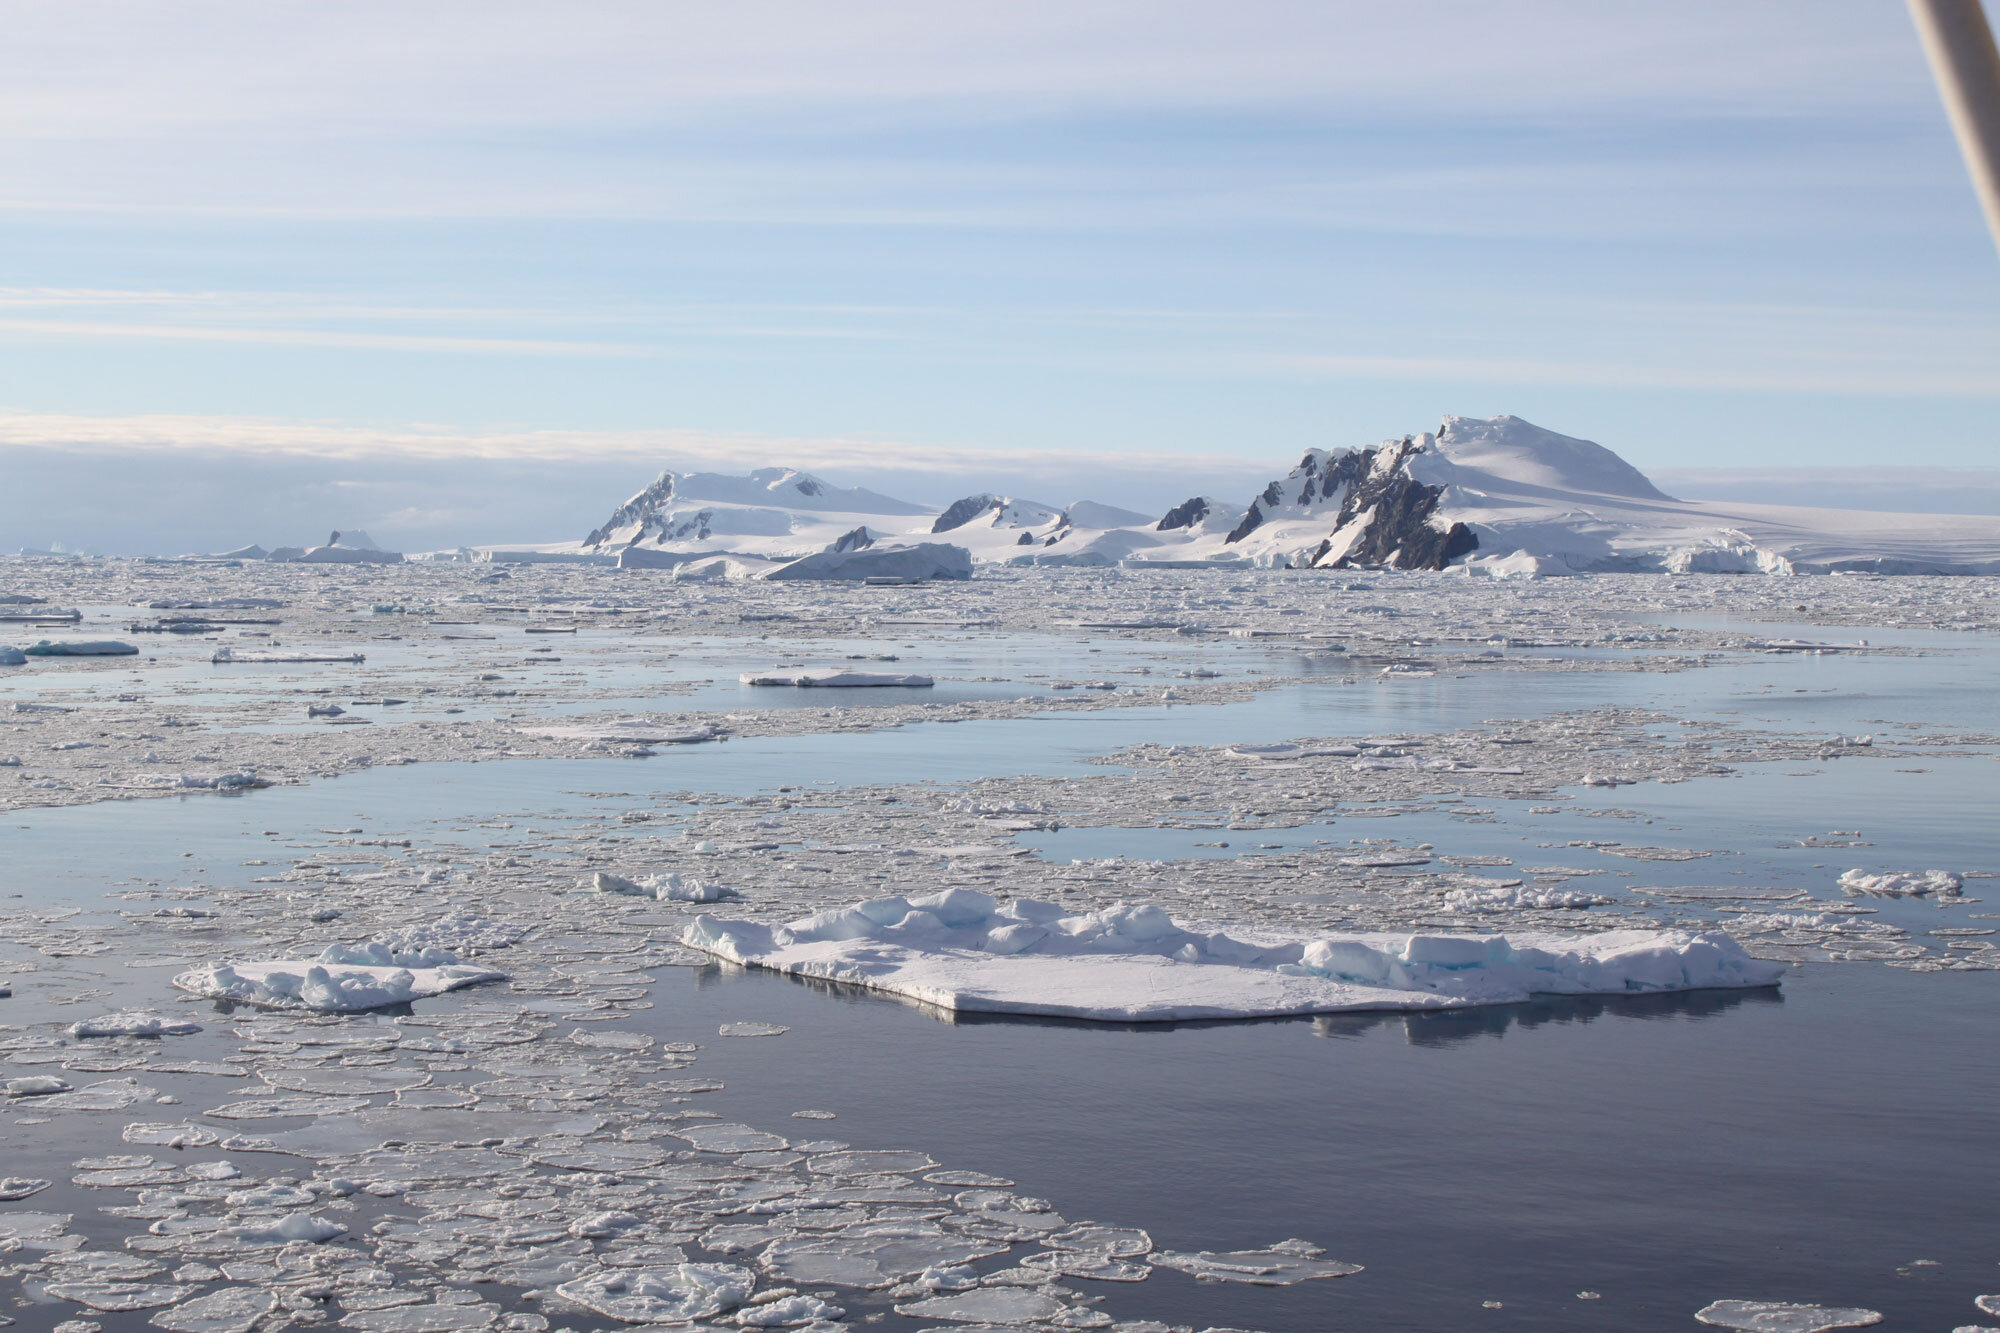 phys.org - Russ Bahorsky - To predict the future of polar ice, environmental scientists are looking to the past